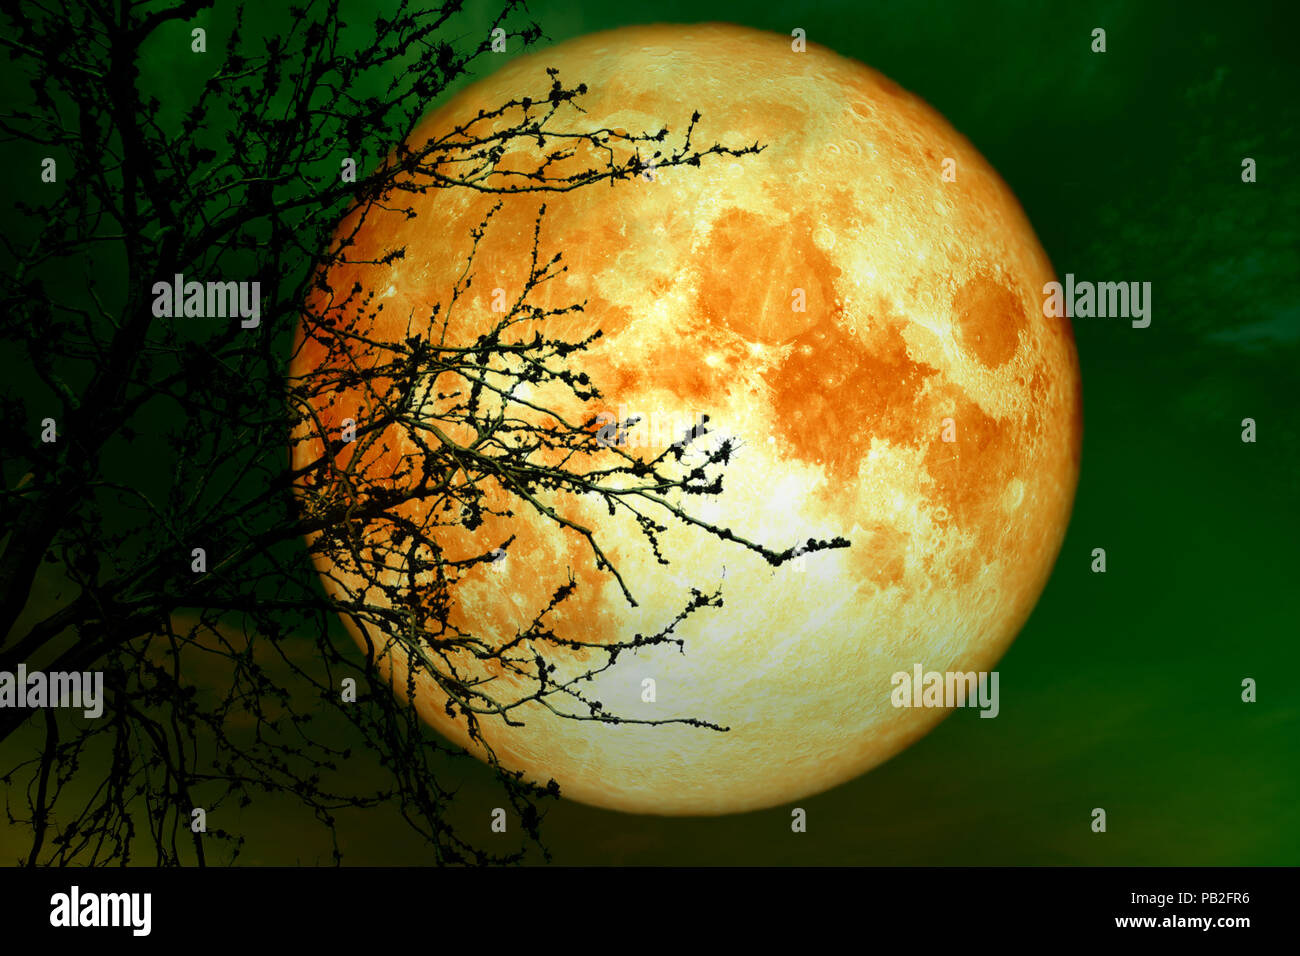 full blood moon near earth on night sky back silhouette dry branch tree, Elements of this image furnished by NASA - Stock Image